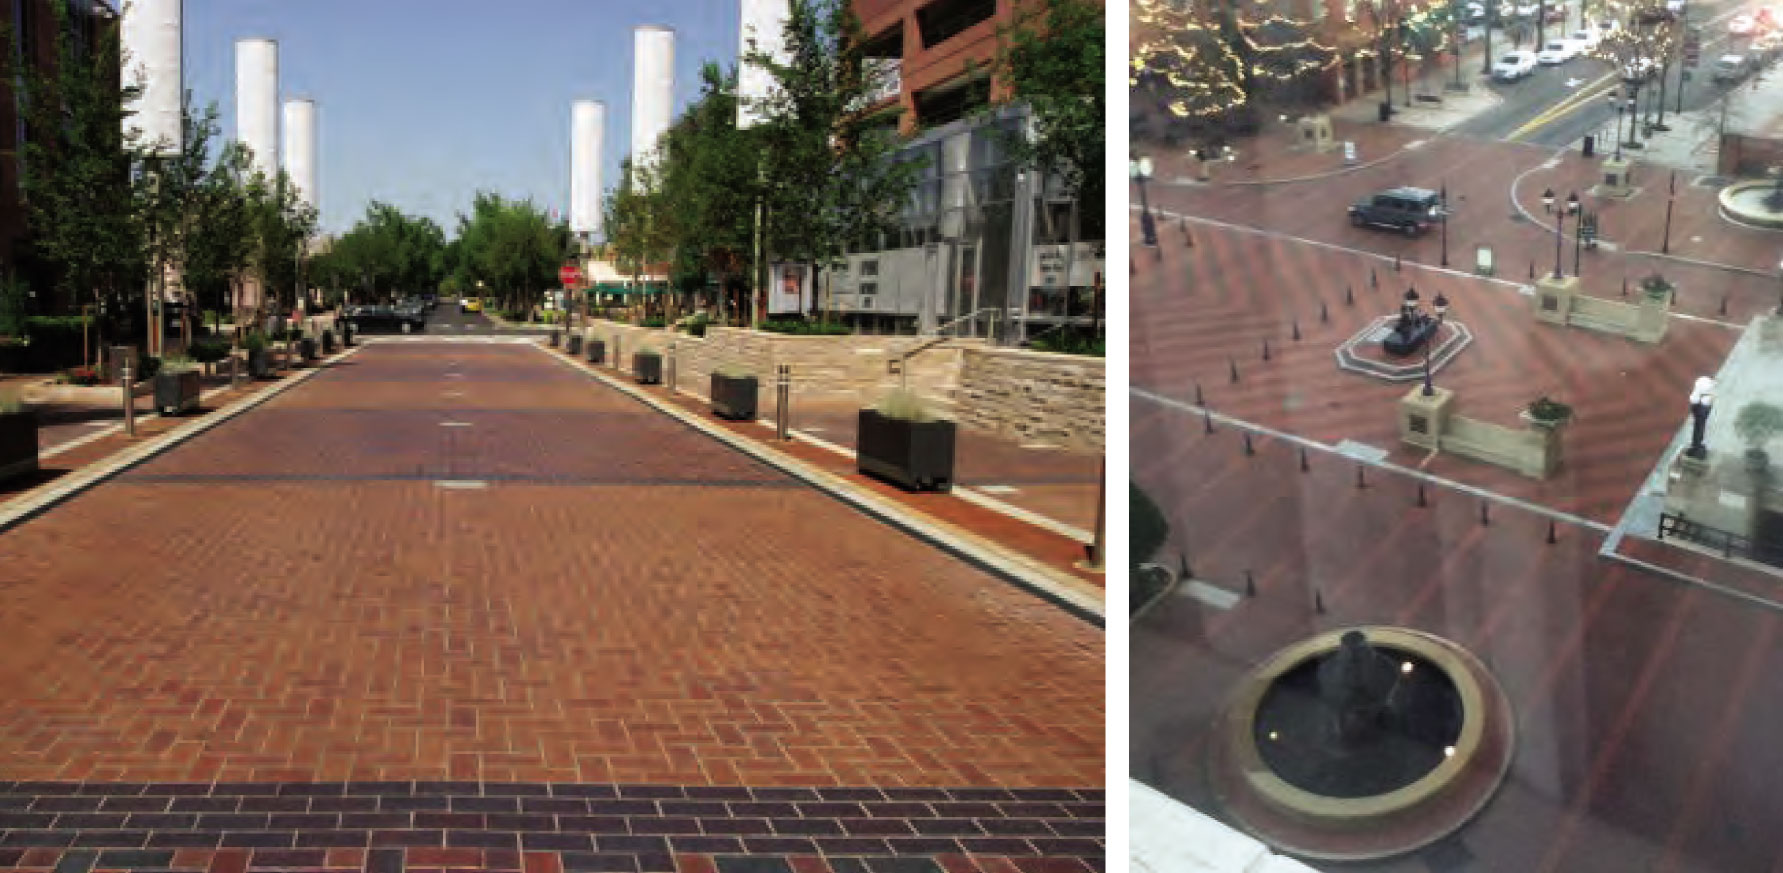 Reference photos for pedestrian plaza/street.